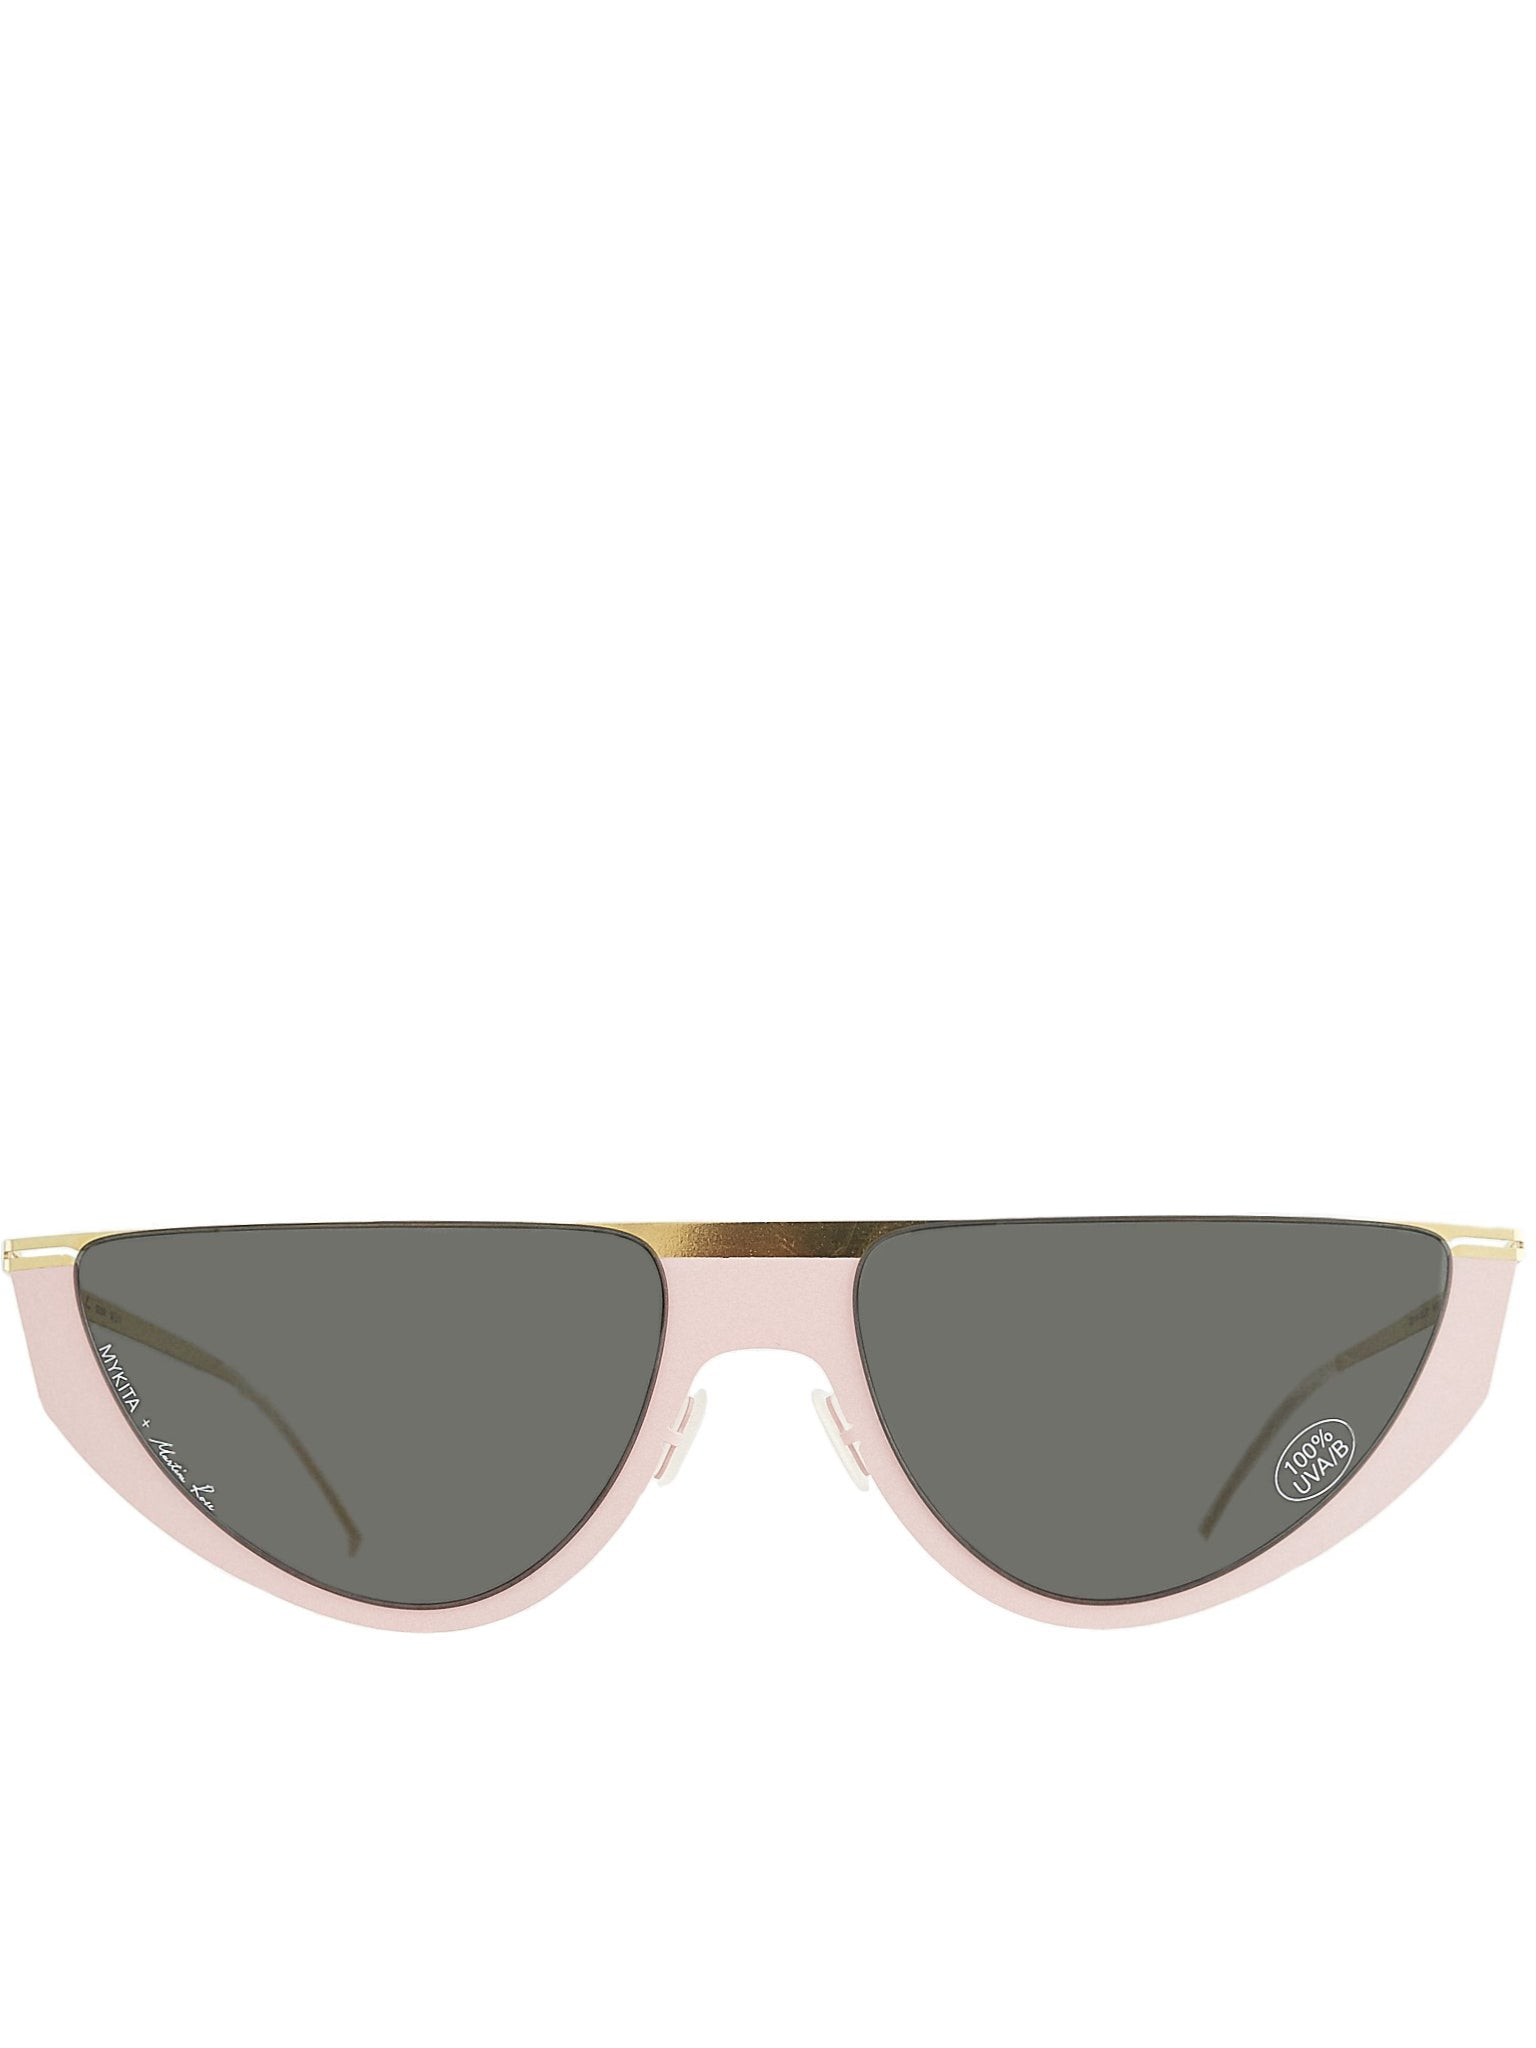 'Selina' Duotone Sunglasses (SELINA-GOLD-ROSE-DARKGREY)